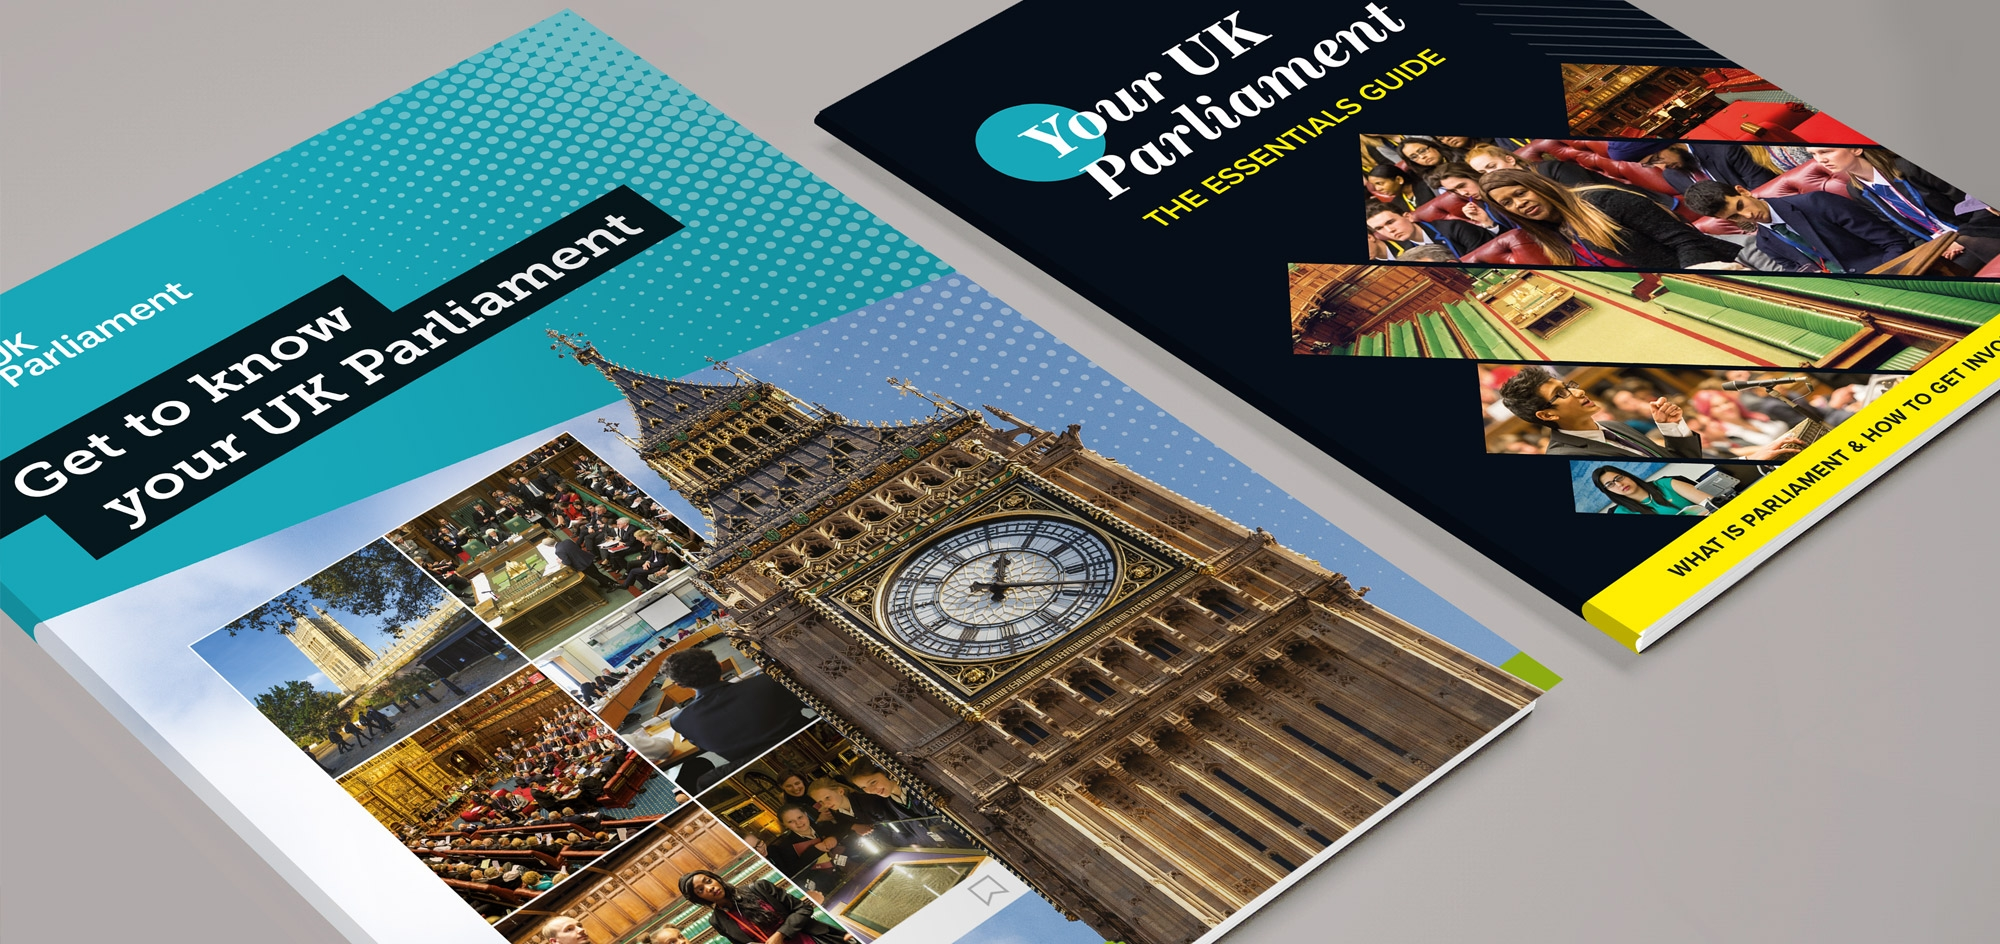 blooberry design – UK Parliament – Key Stage 3 and 4 book covers – publishing design